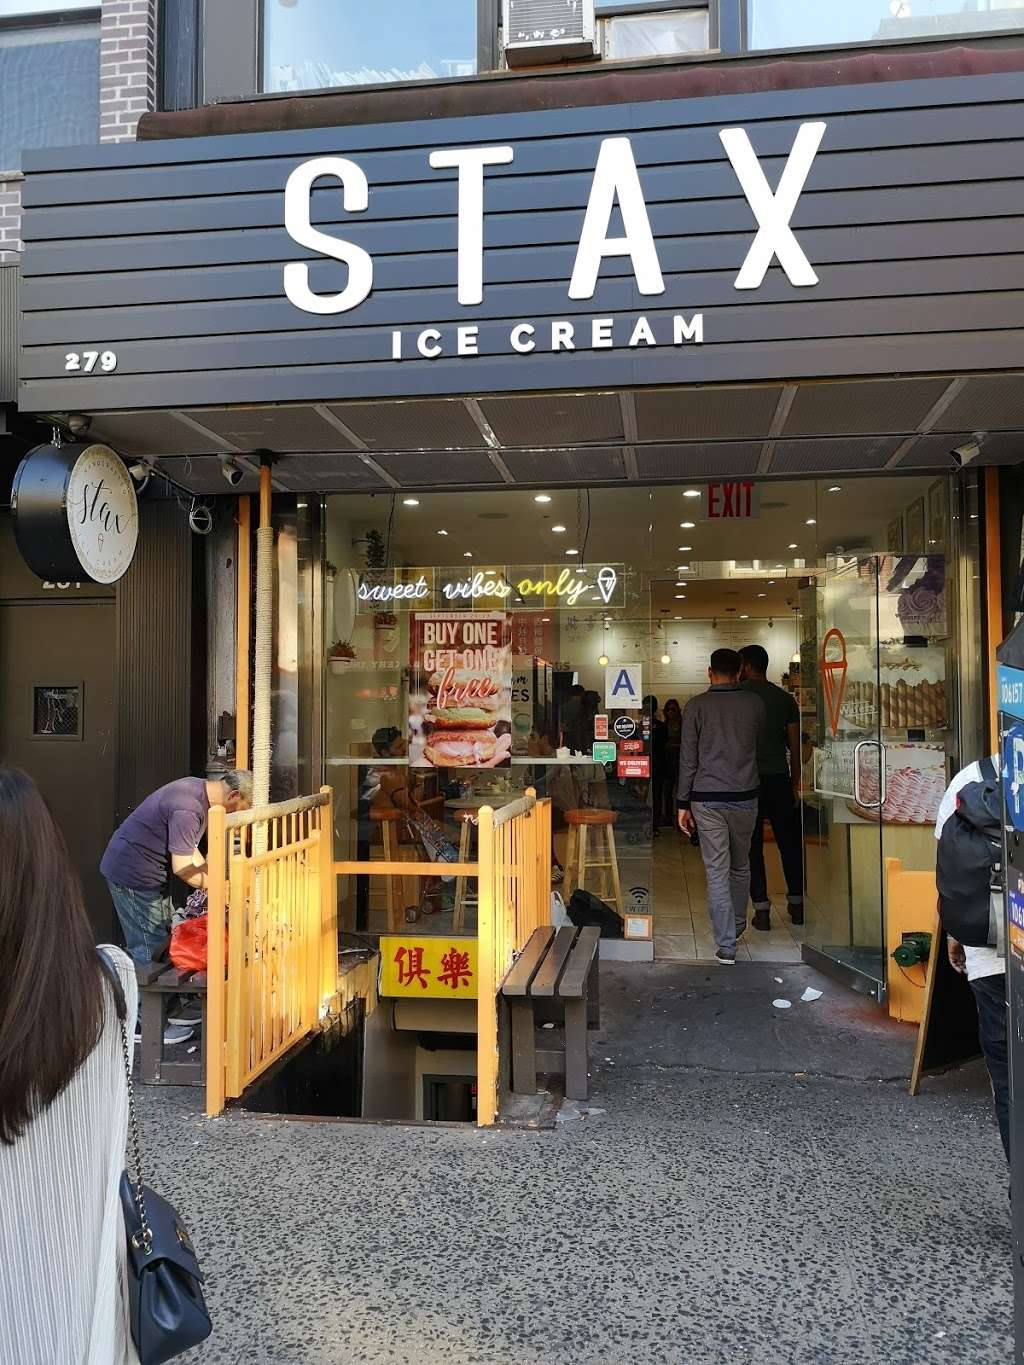 Stax Ice Cream - bakery  | Photo 3 of 10 | Address: 279 Grand St, New York, NY 10002, USA | Phone: (646) 870-0214